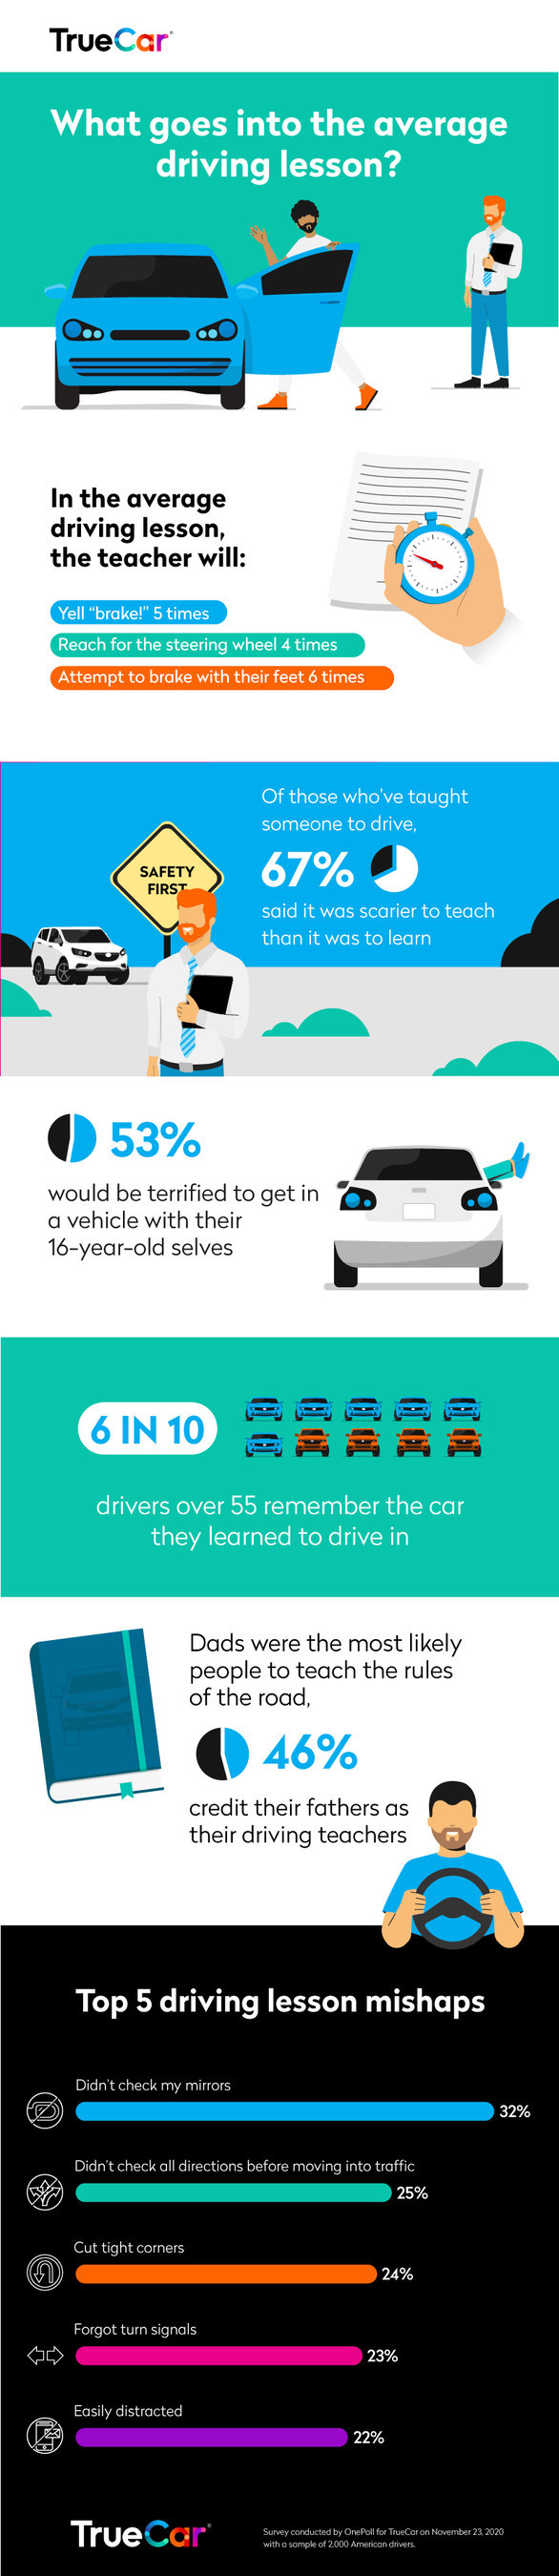 Rite of Passage: Learning to Drive Study Infographic by TrueCar, Inc.